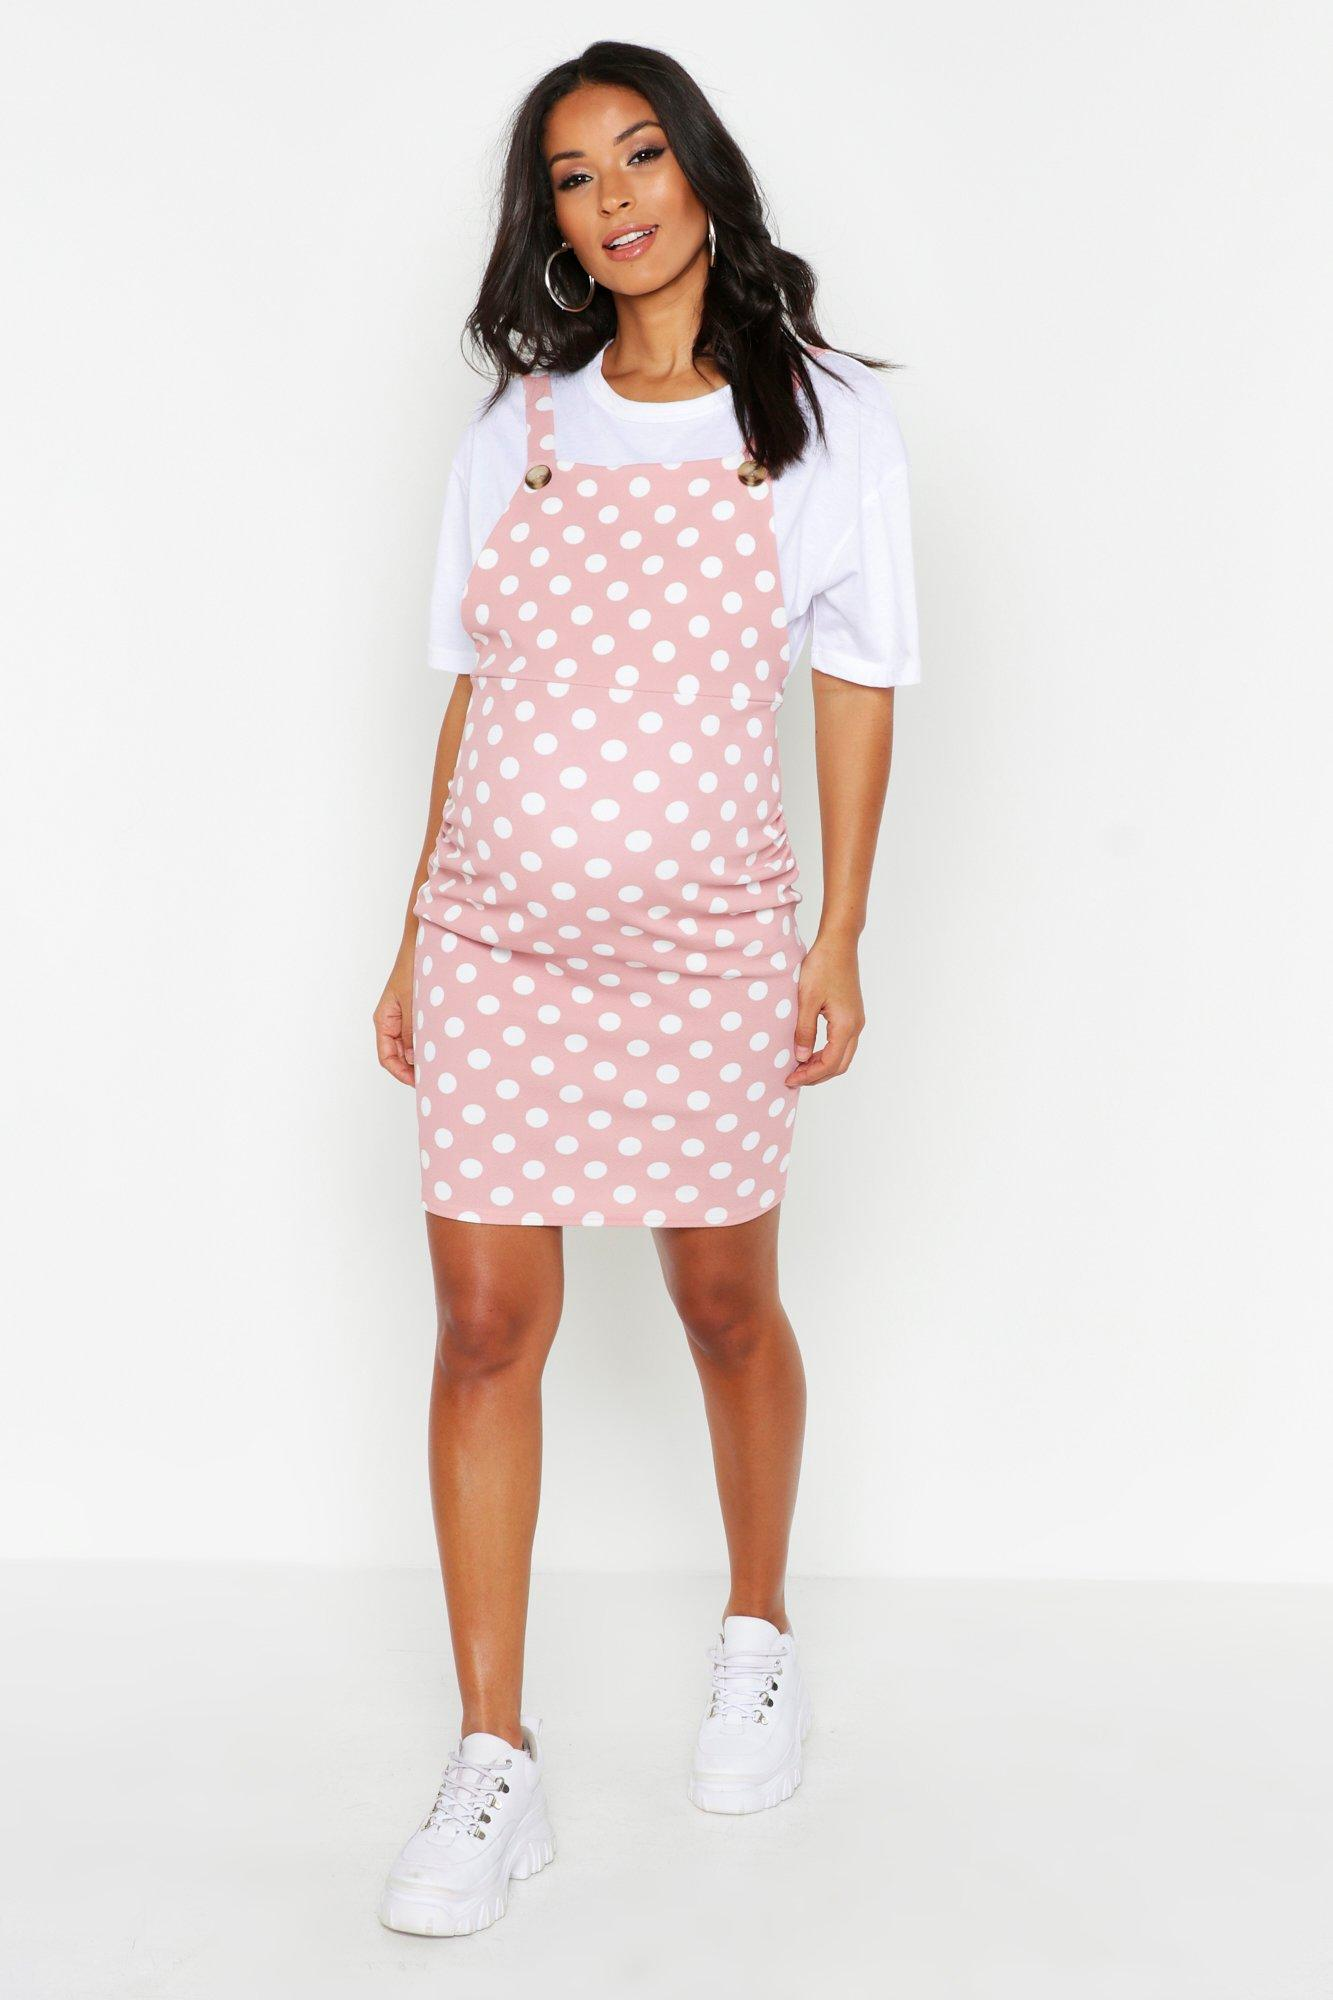 Vintage Maternity Clothes History Womens Maternity Polka Dot Pinafore Dress - Pink - 12 $17.60 AT vintagedancer.com